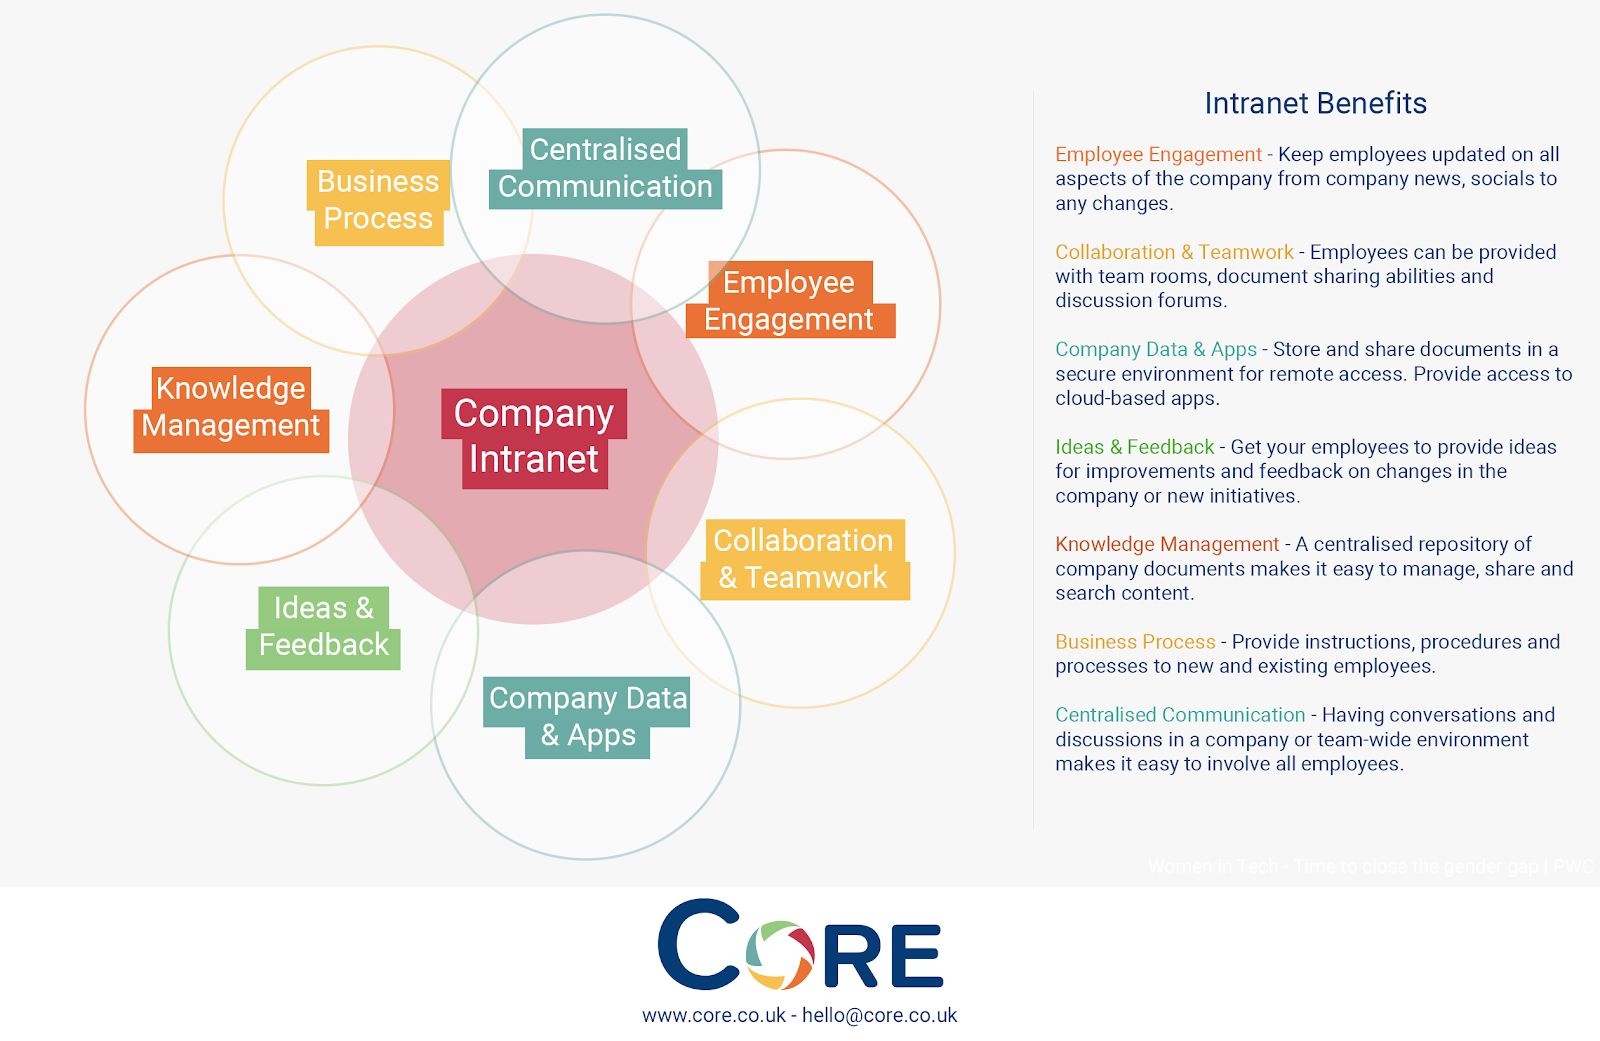 intranet in business